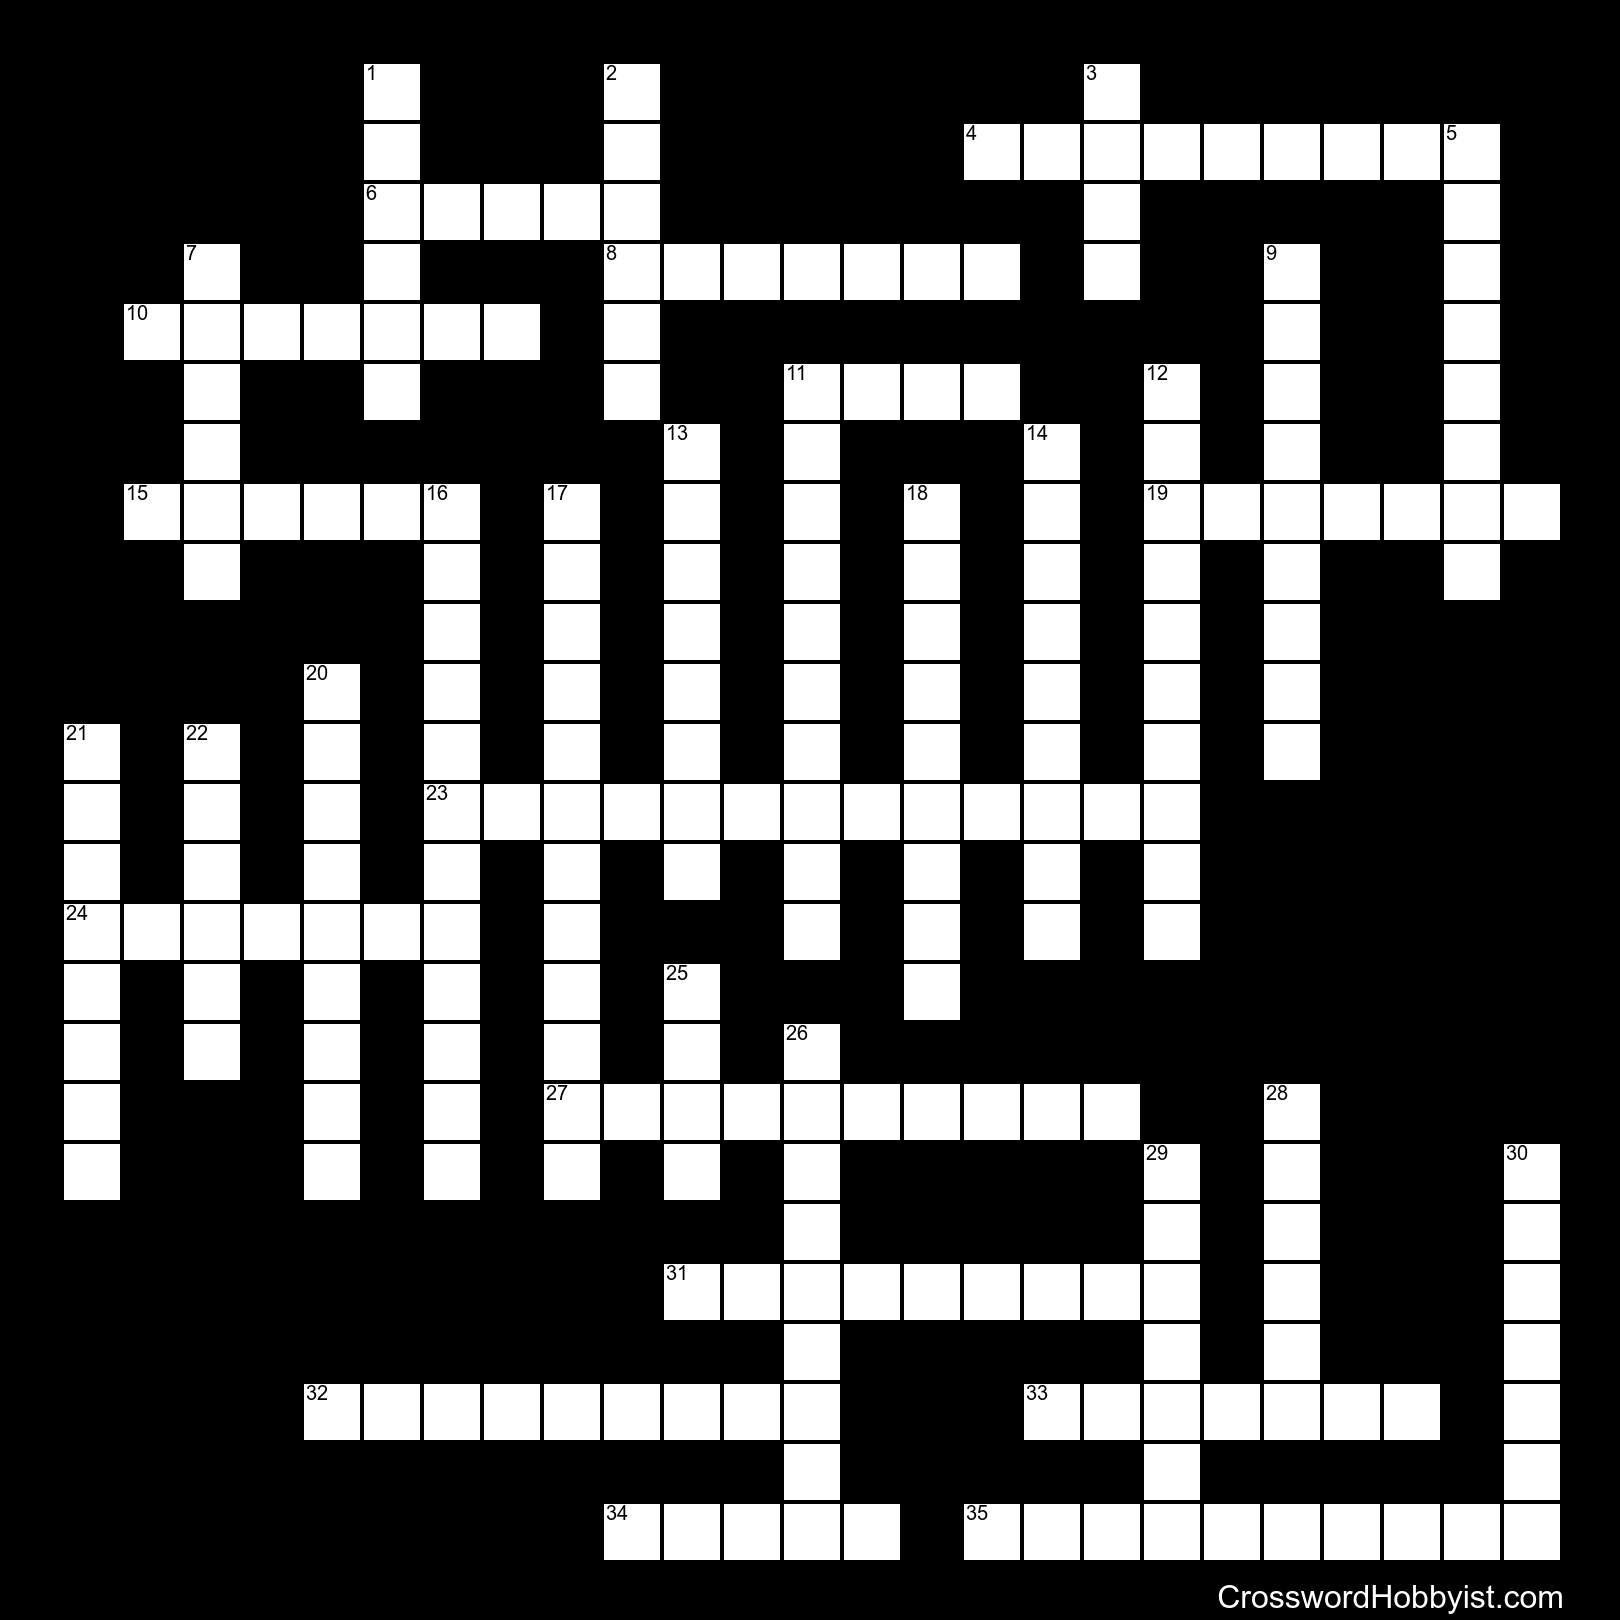 Integumentary System - Williams - Crossword Puzzle